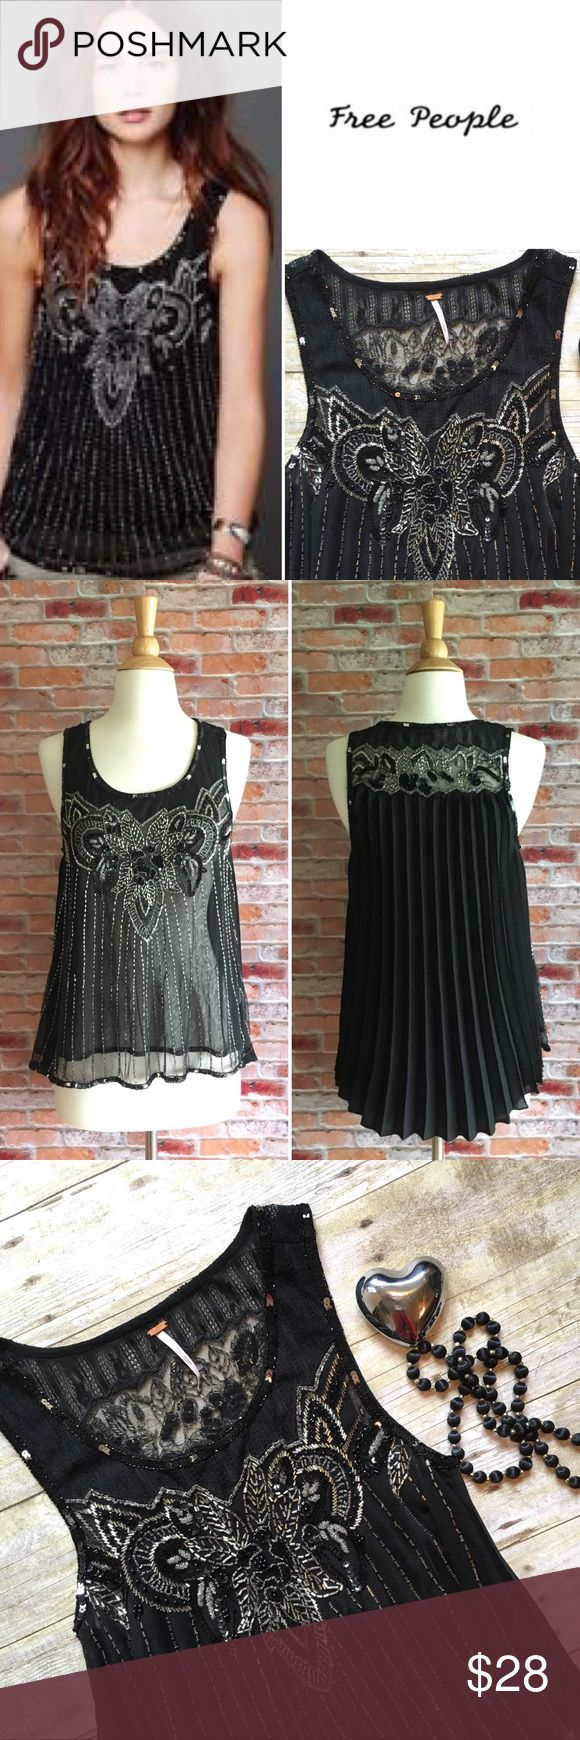 "Free People pleated embellished Black Top Semi-sheer beaded front with a beaded and pleated back. High low cut. In excellent condtion, missing a few beads on the back, hardly noticeable. Closure in pics. Otherwise flawless condition. 24""L in front, 28""L in back. 17"" bust laying flat. Size small. {Location B10} Free People Tops"